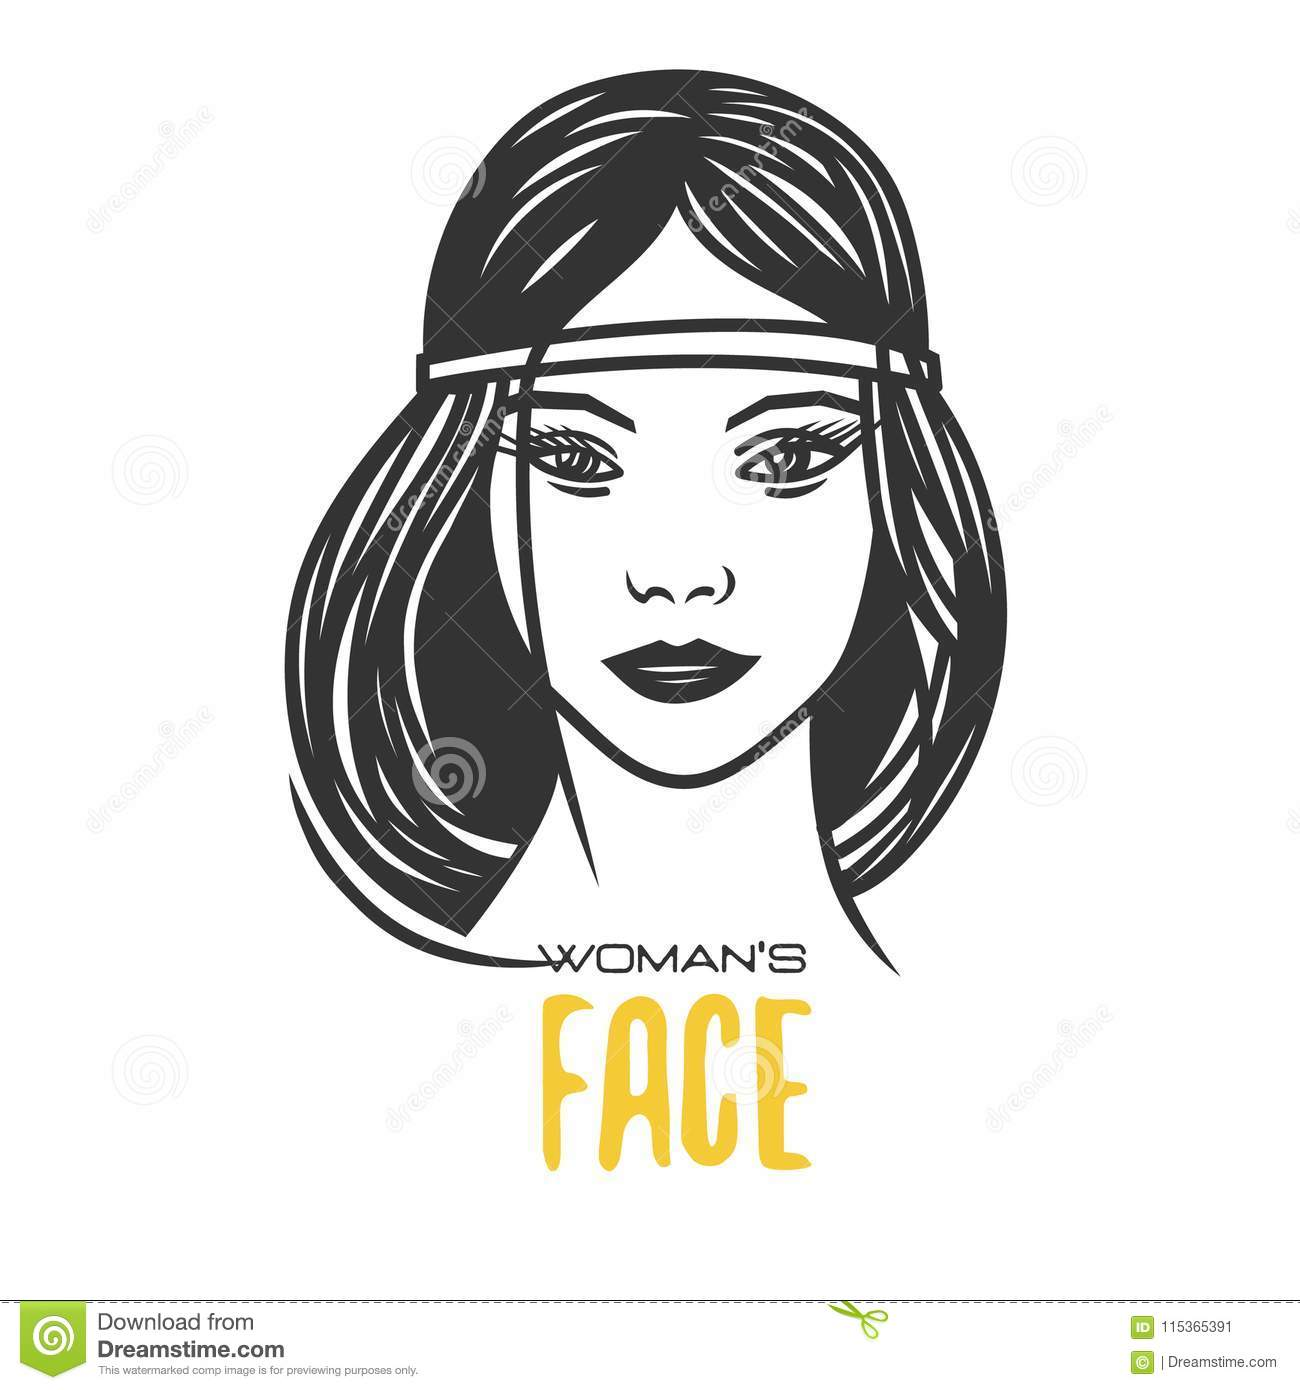 Womens faces black and white vector object